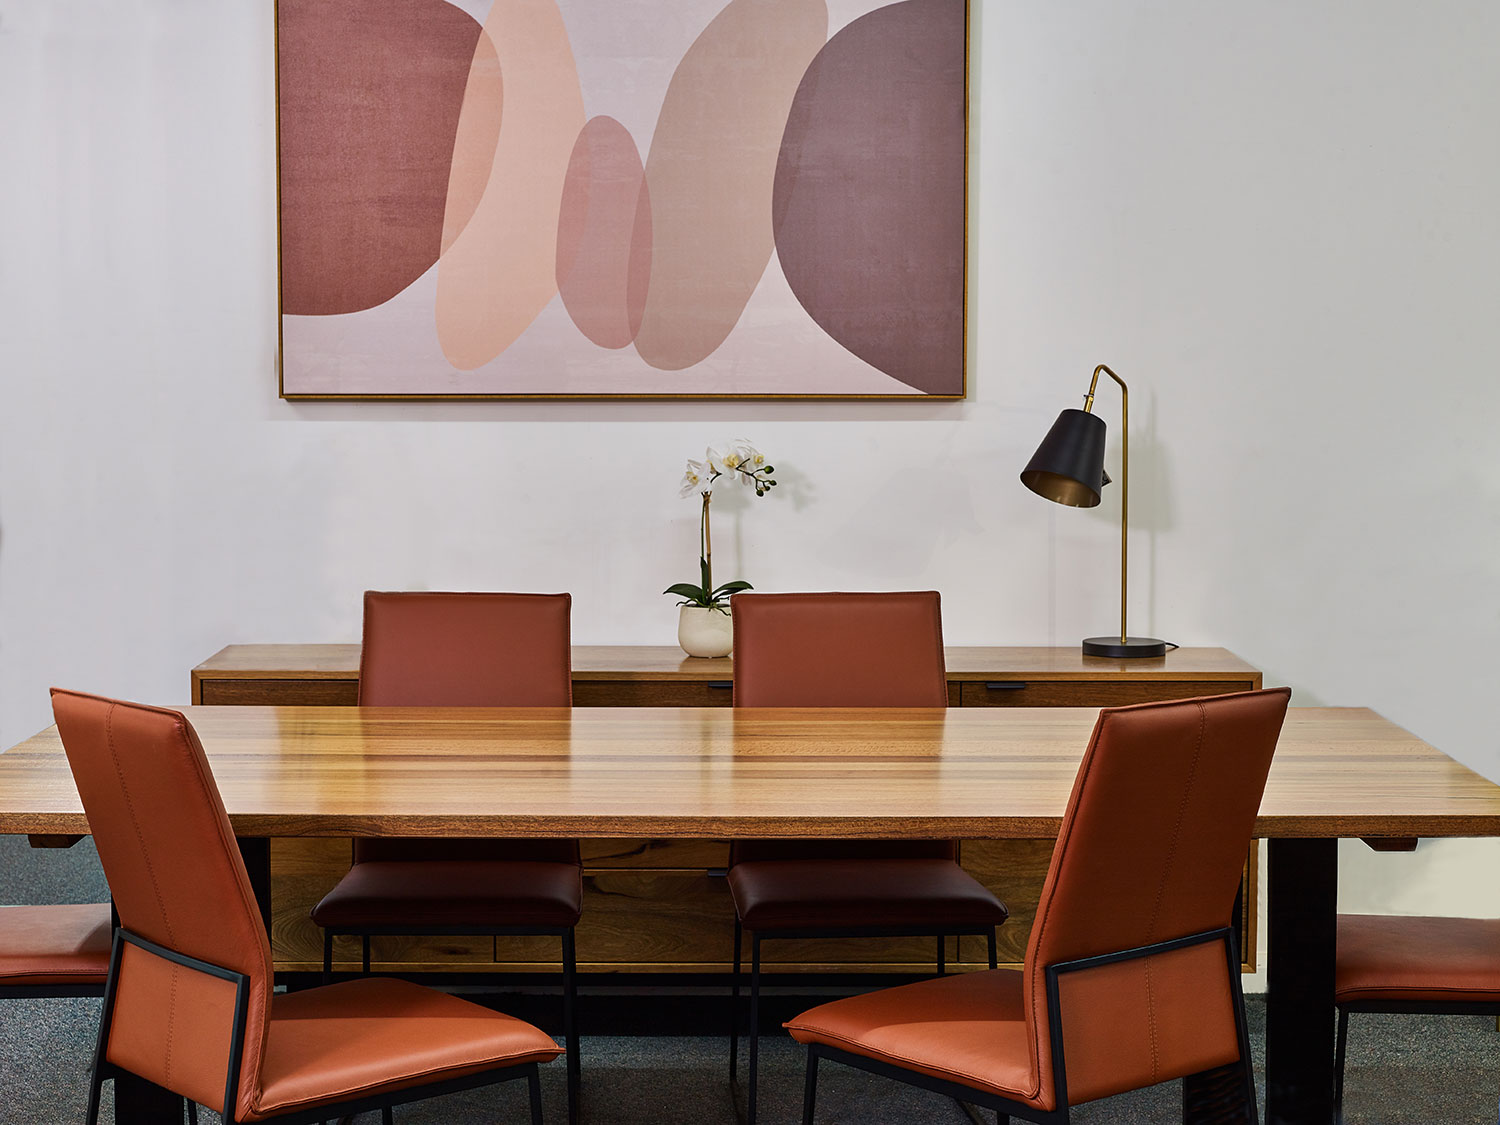 The Luca dining setting in Marri timber